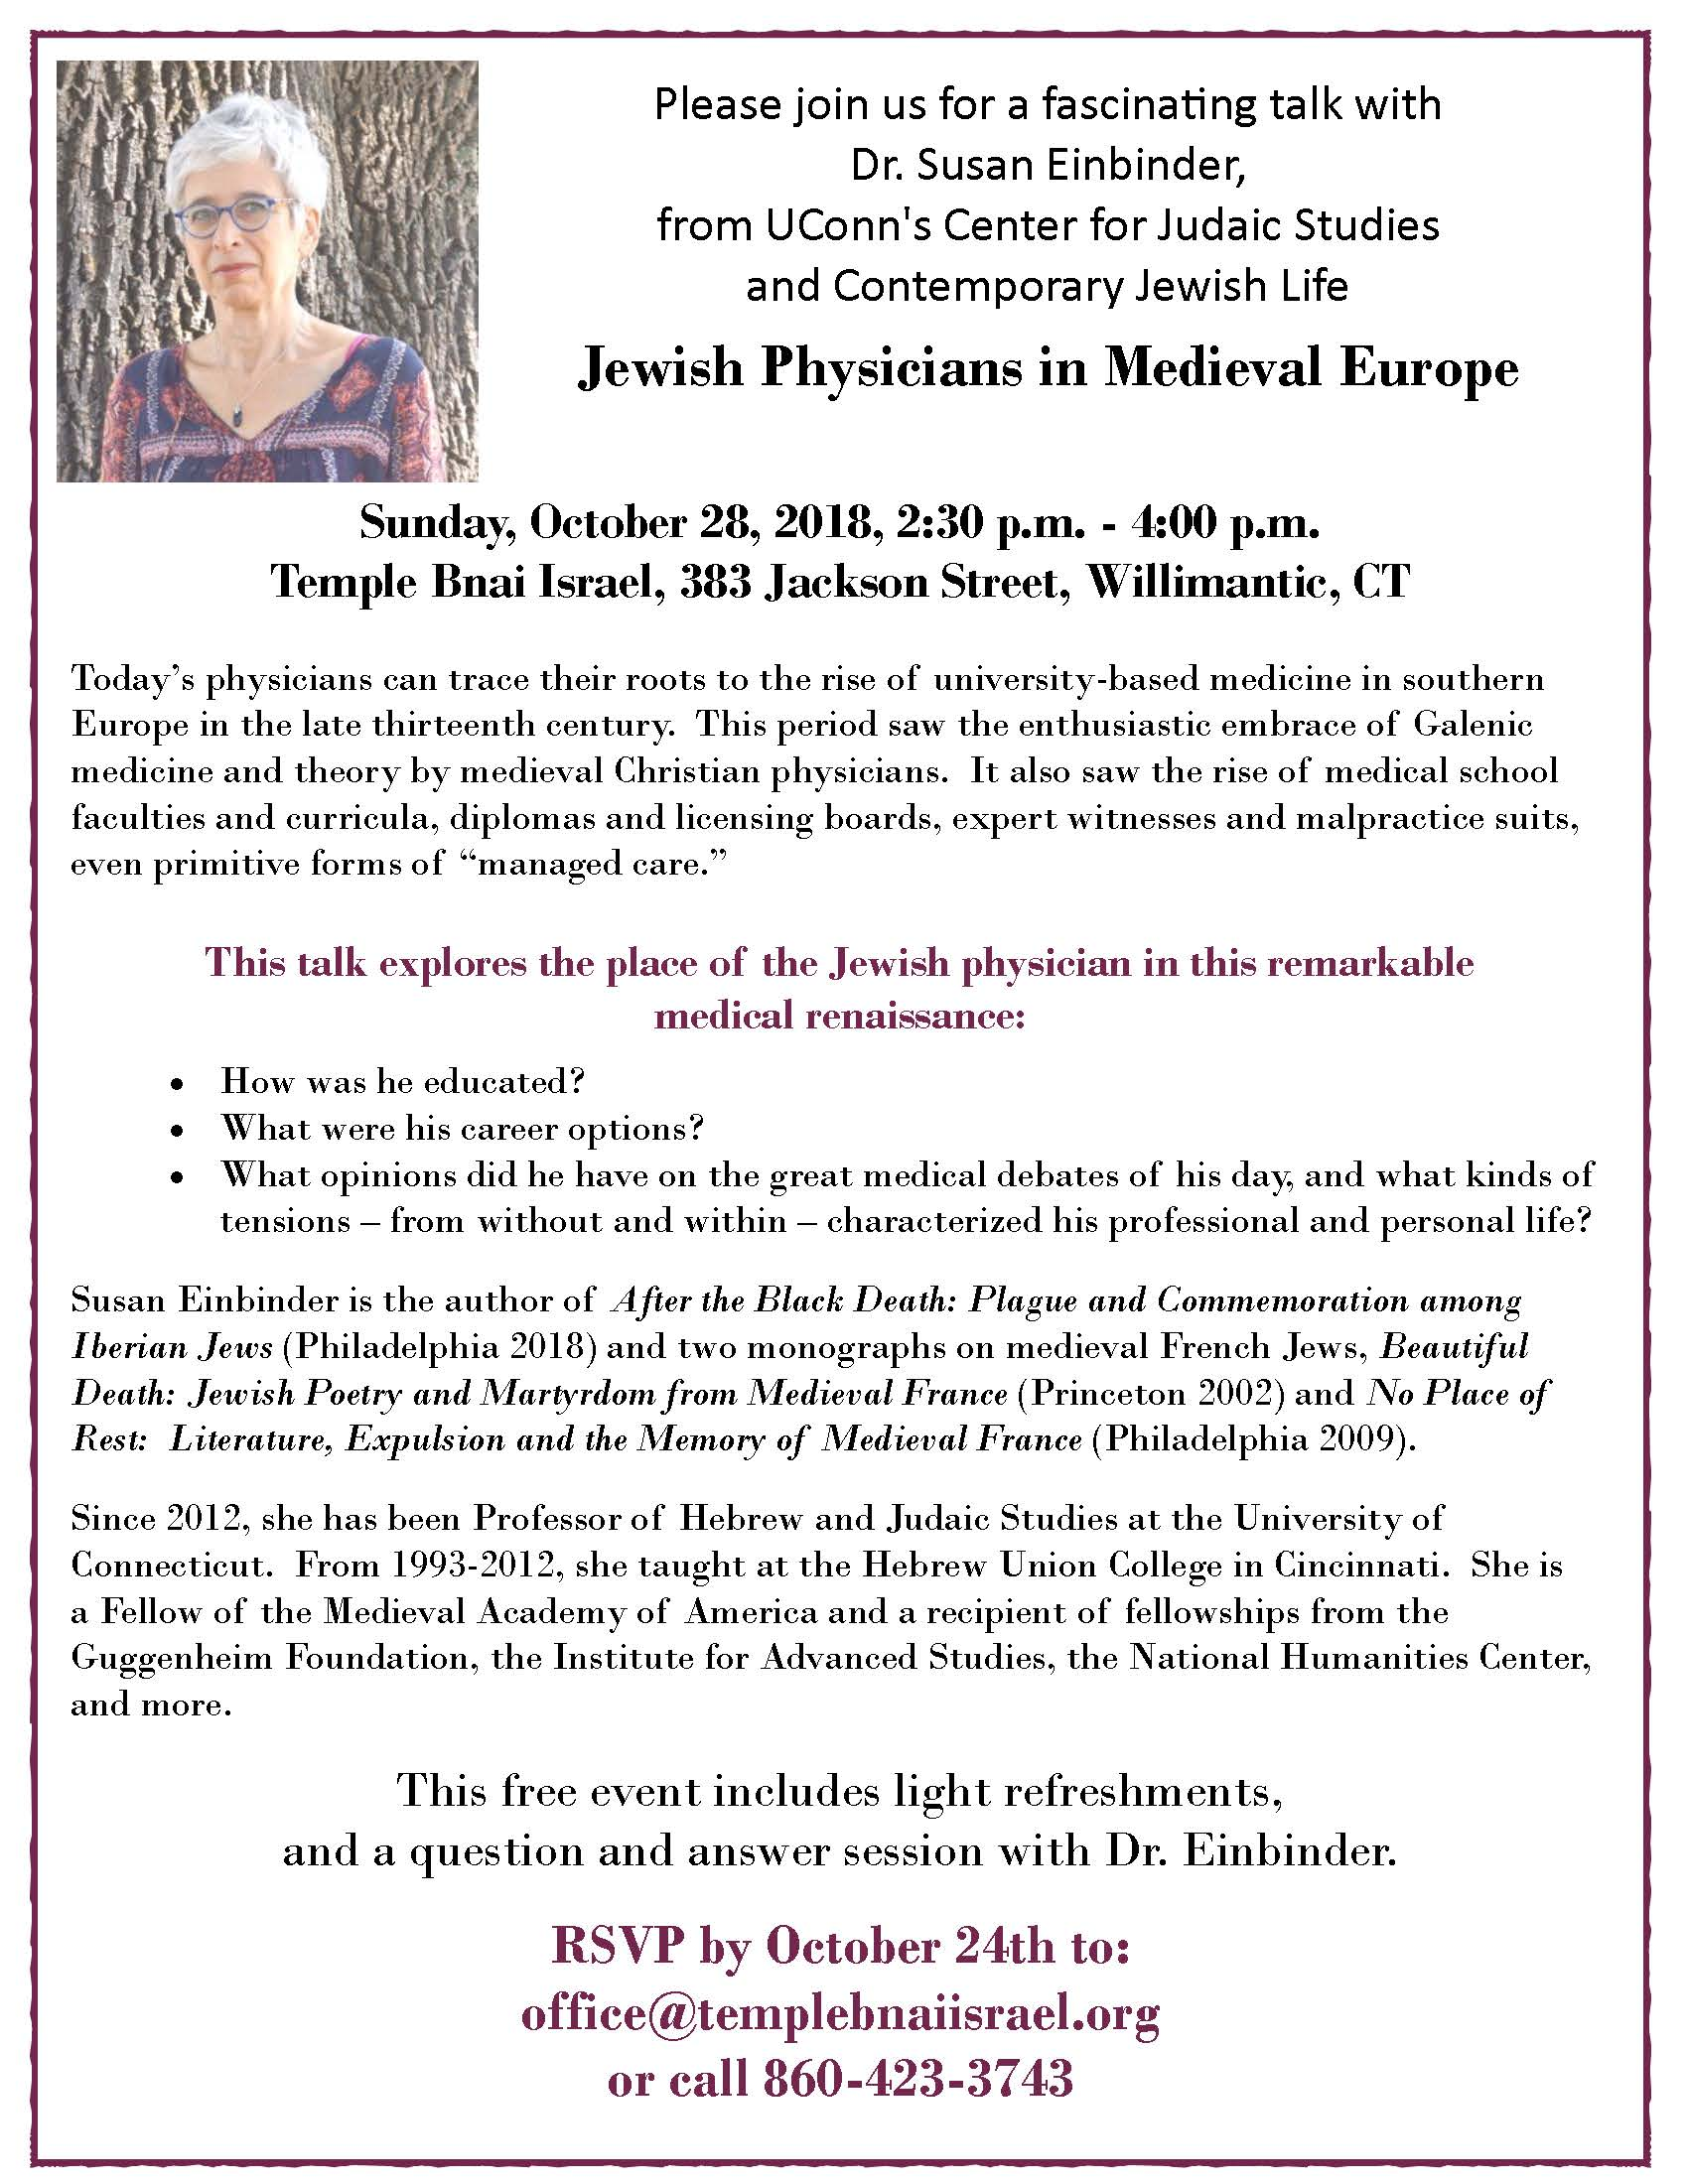 Jewish Physicians in Medieval Europe with Dr  Susan Einbinder, Oct